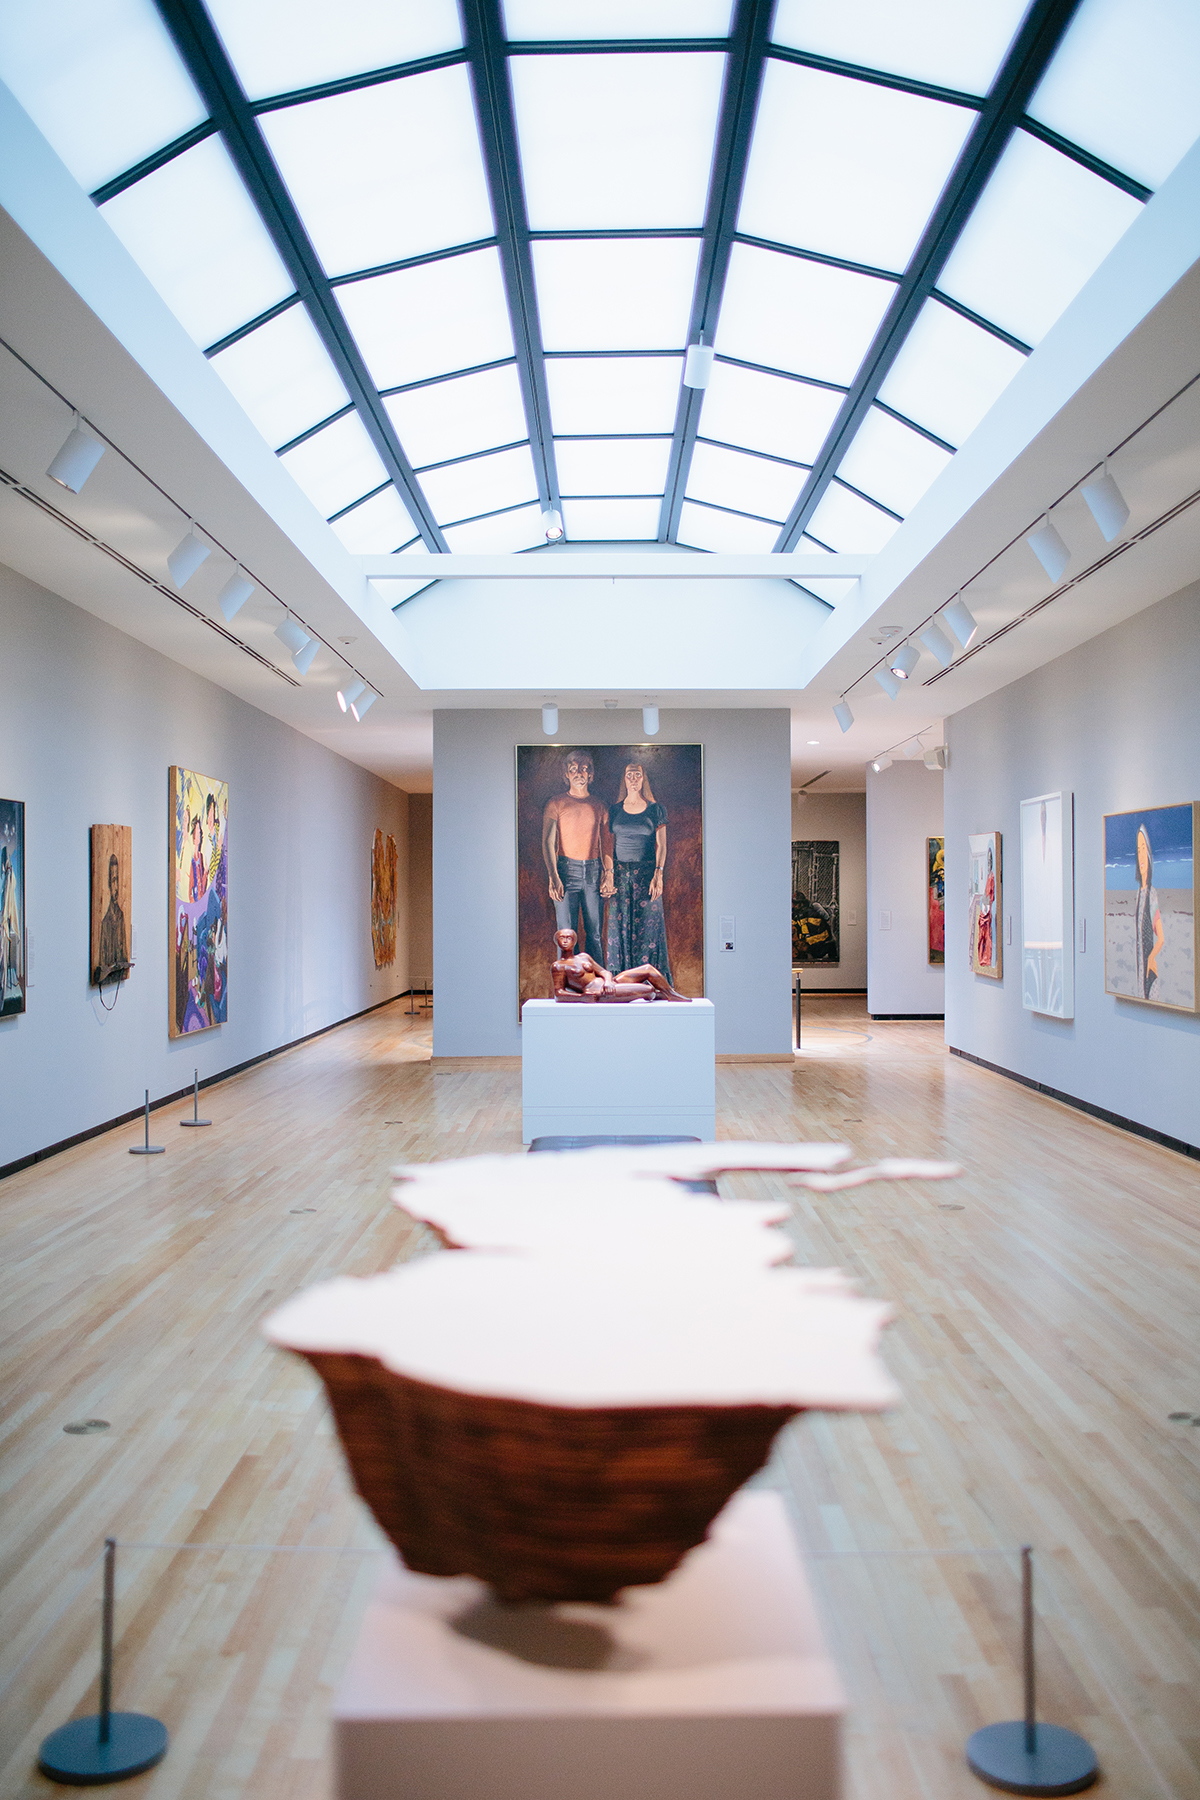 Virginia Itinerary: Discover the Finer Things in Art